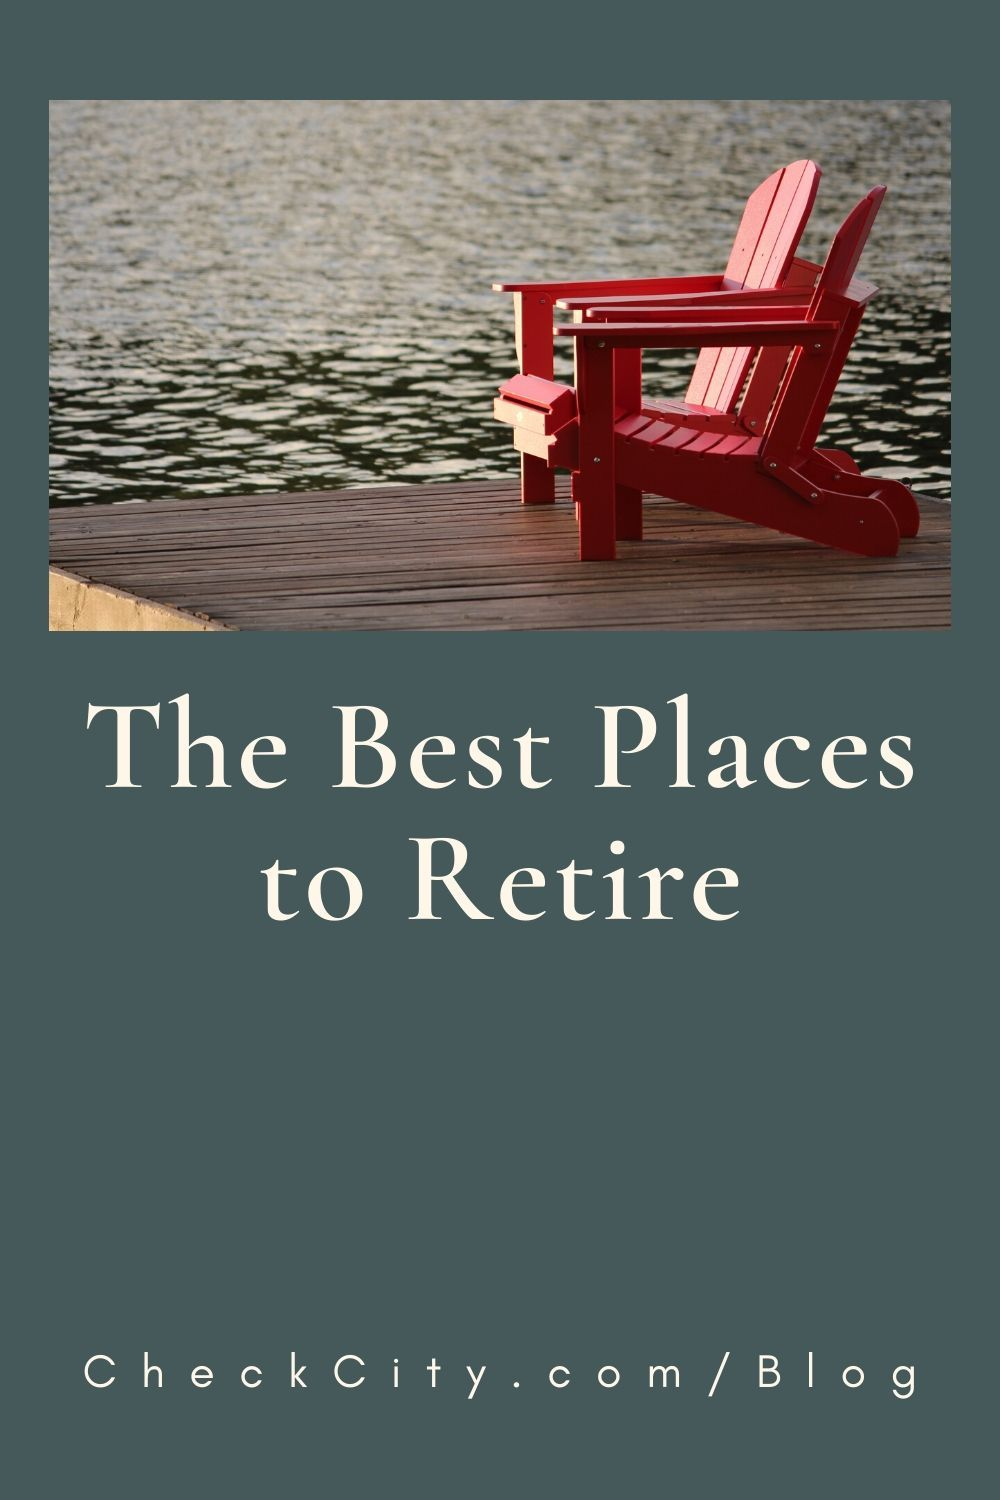 ea30bb892903aa945f8c77b51b92cddb - Best Places To Retire For Gardeners